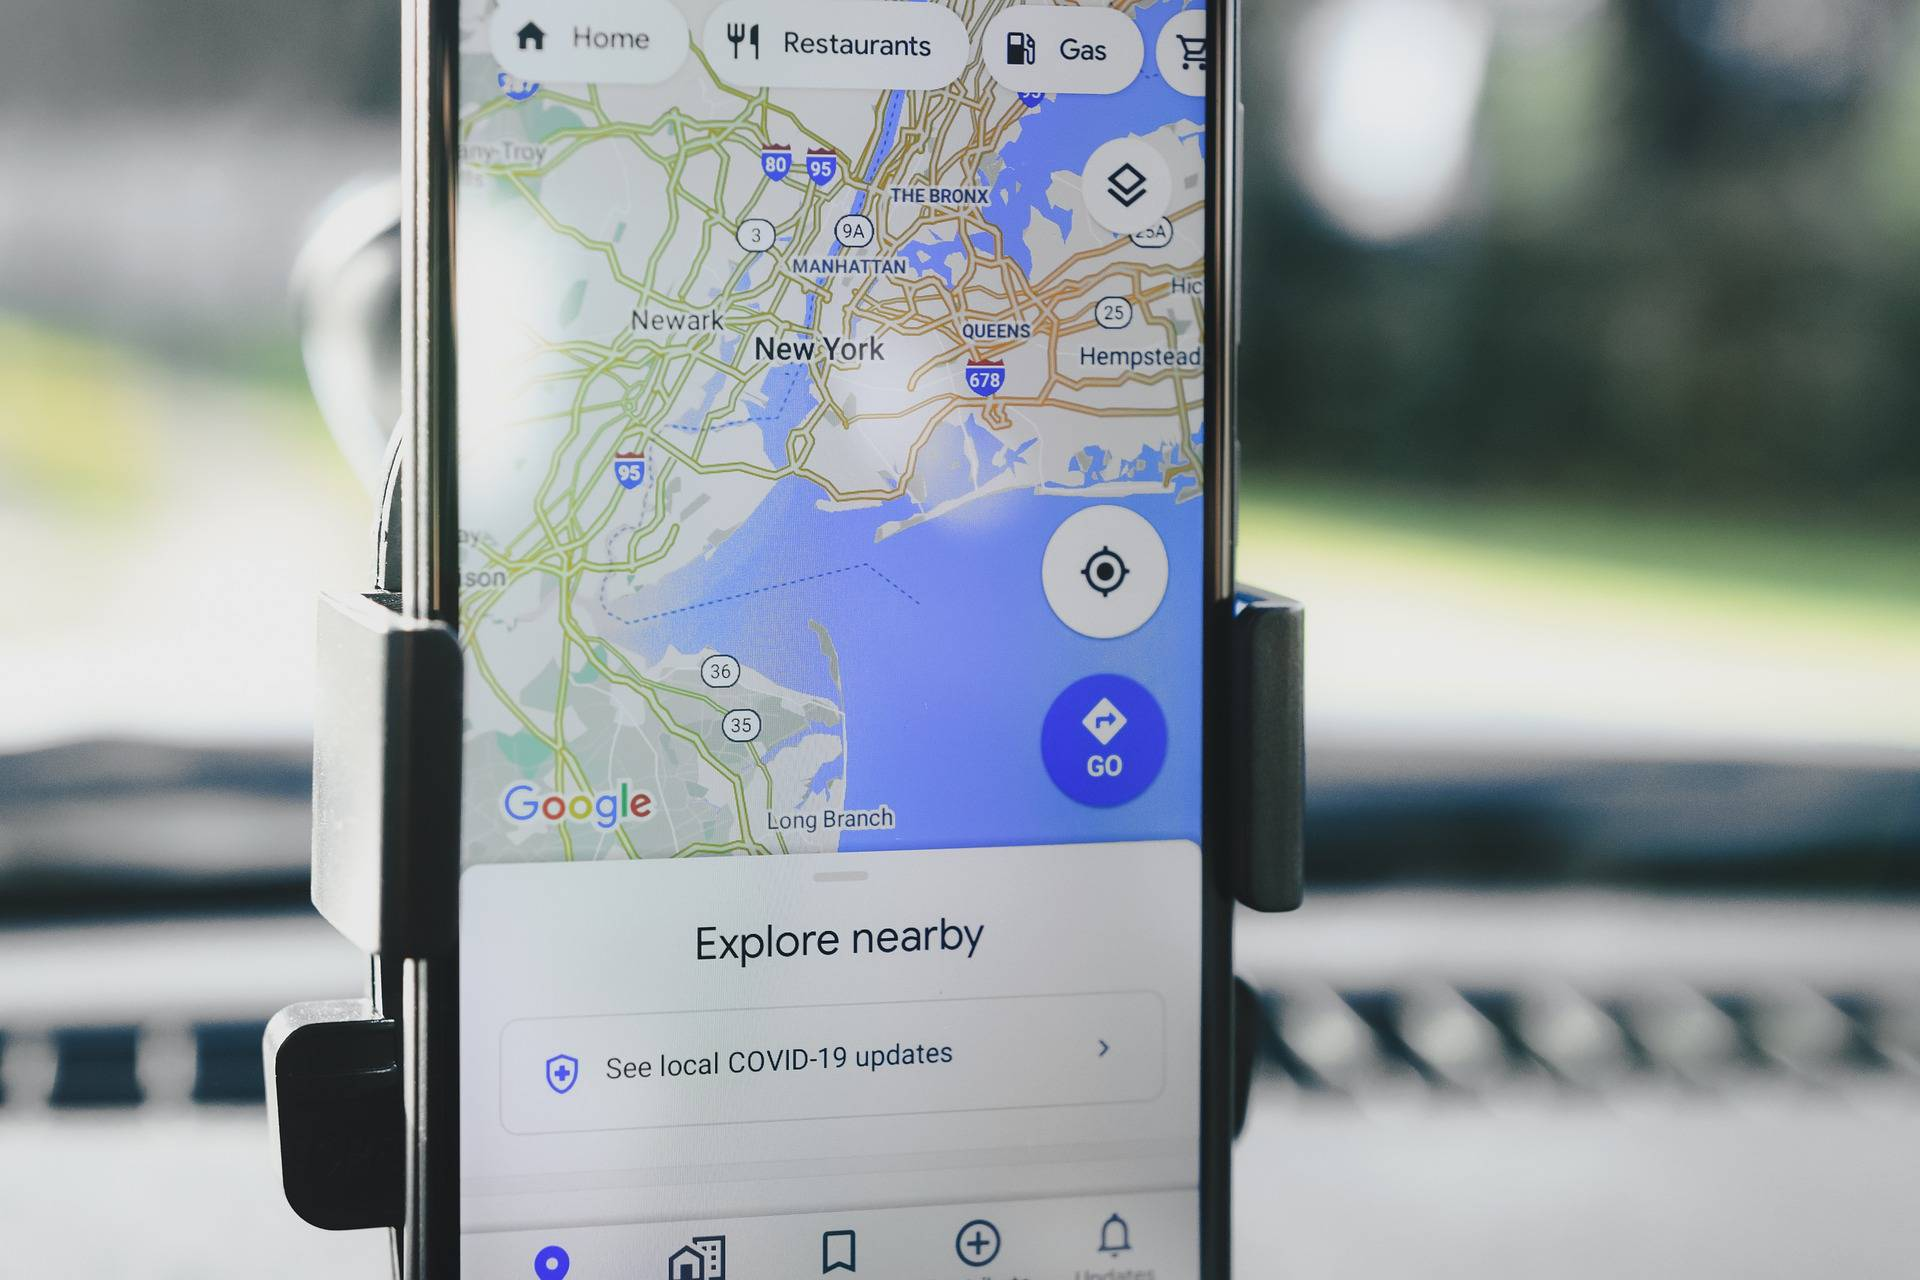 Route Optimization Using Google Maps: Does It Work for Last-Mile Delivery?